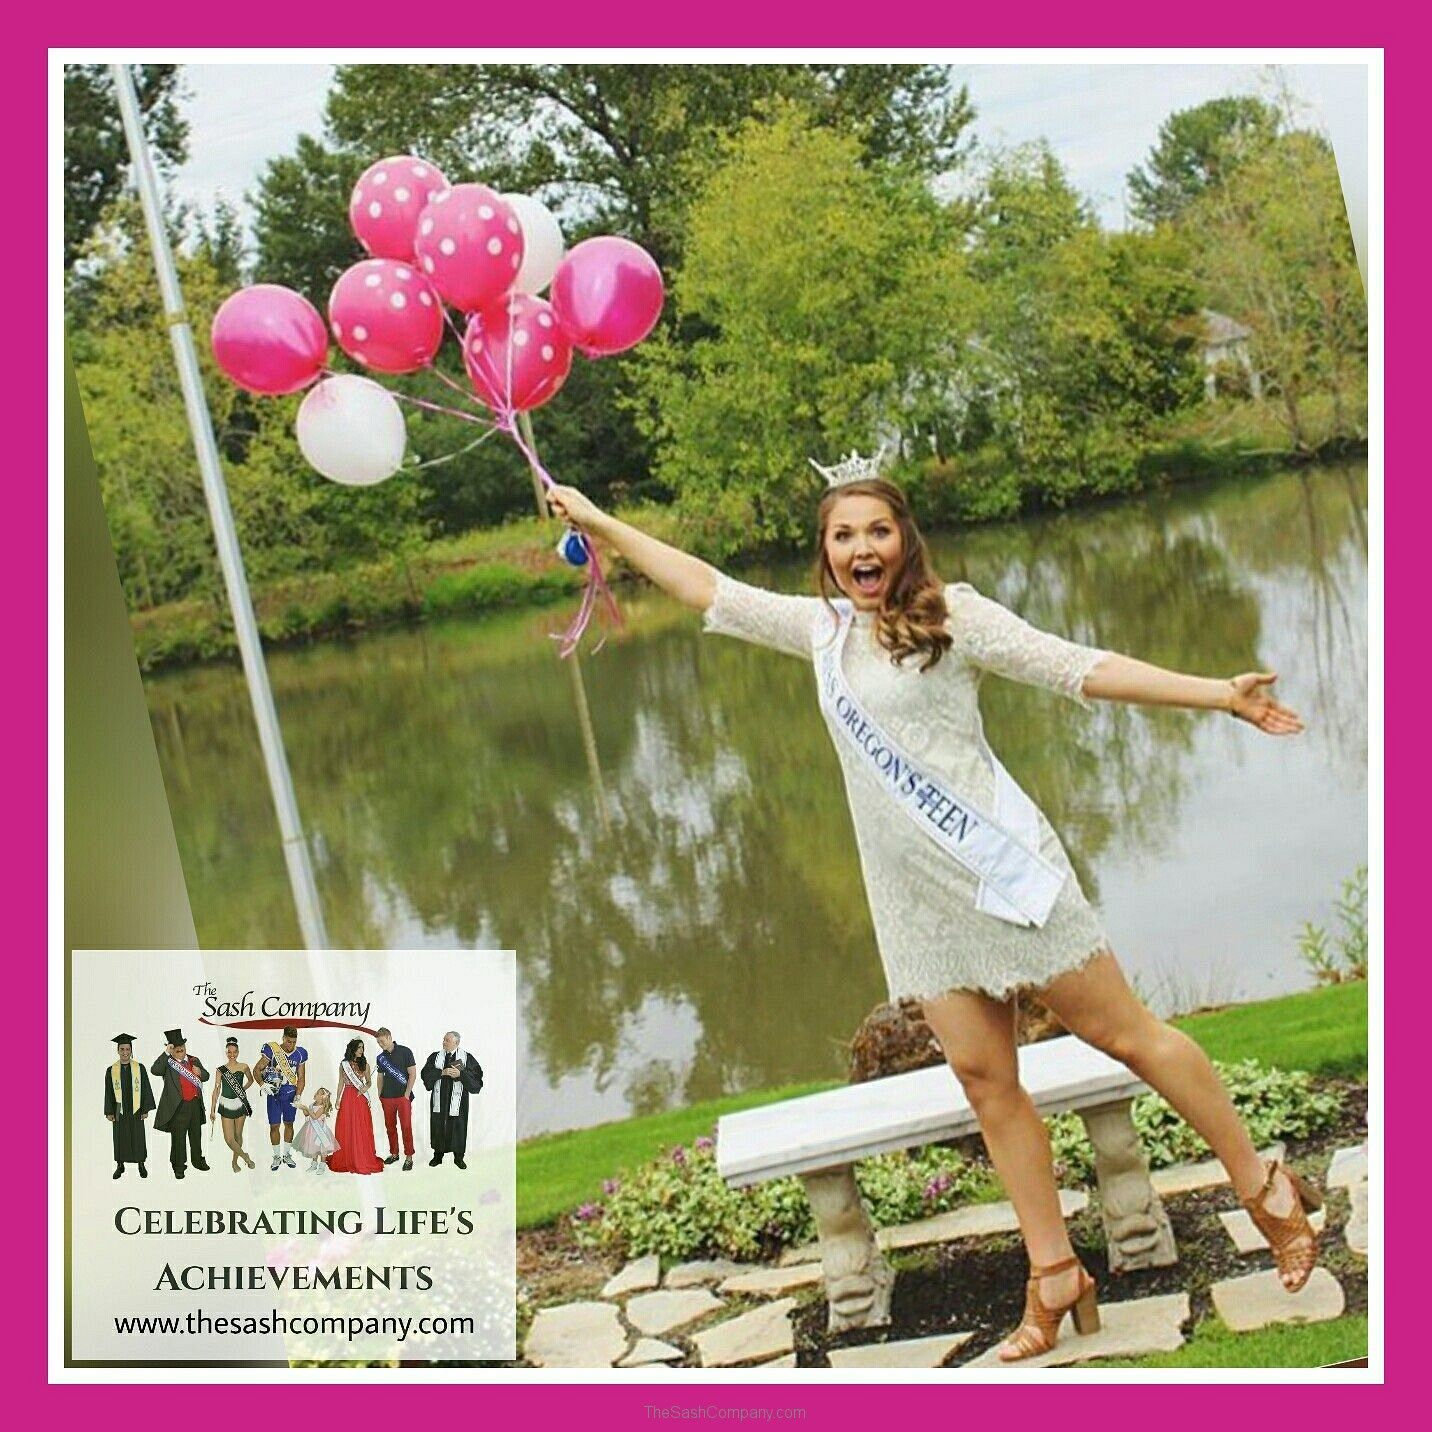 MAOTeen Miss Oregon with Balloons